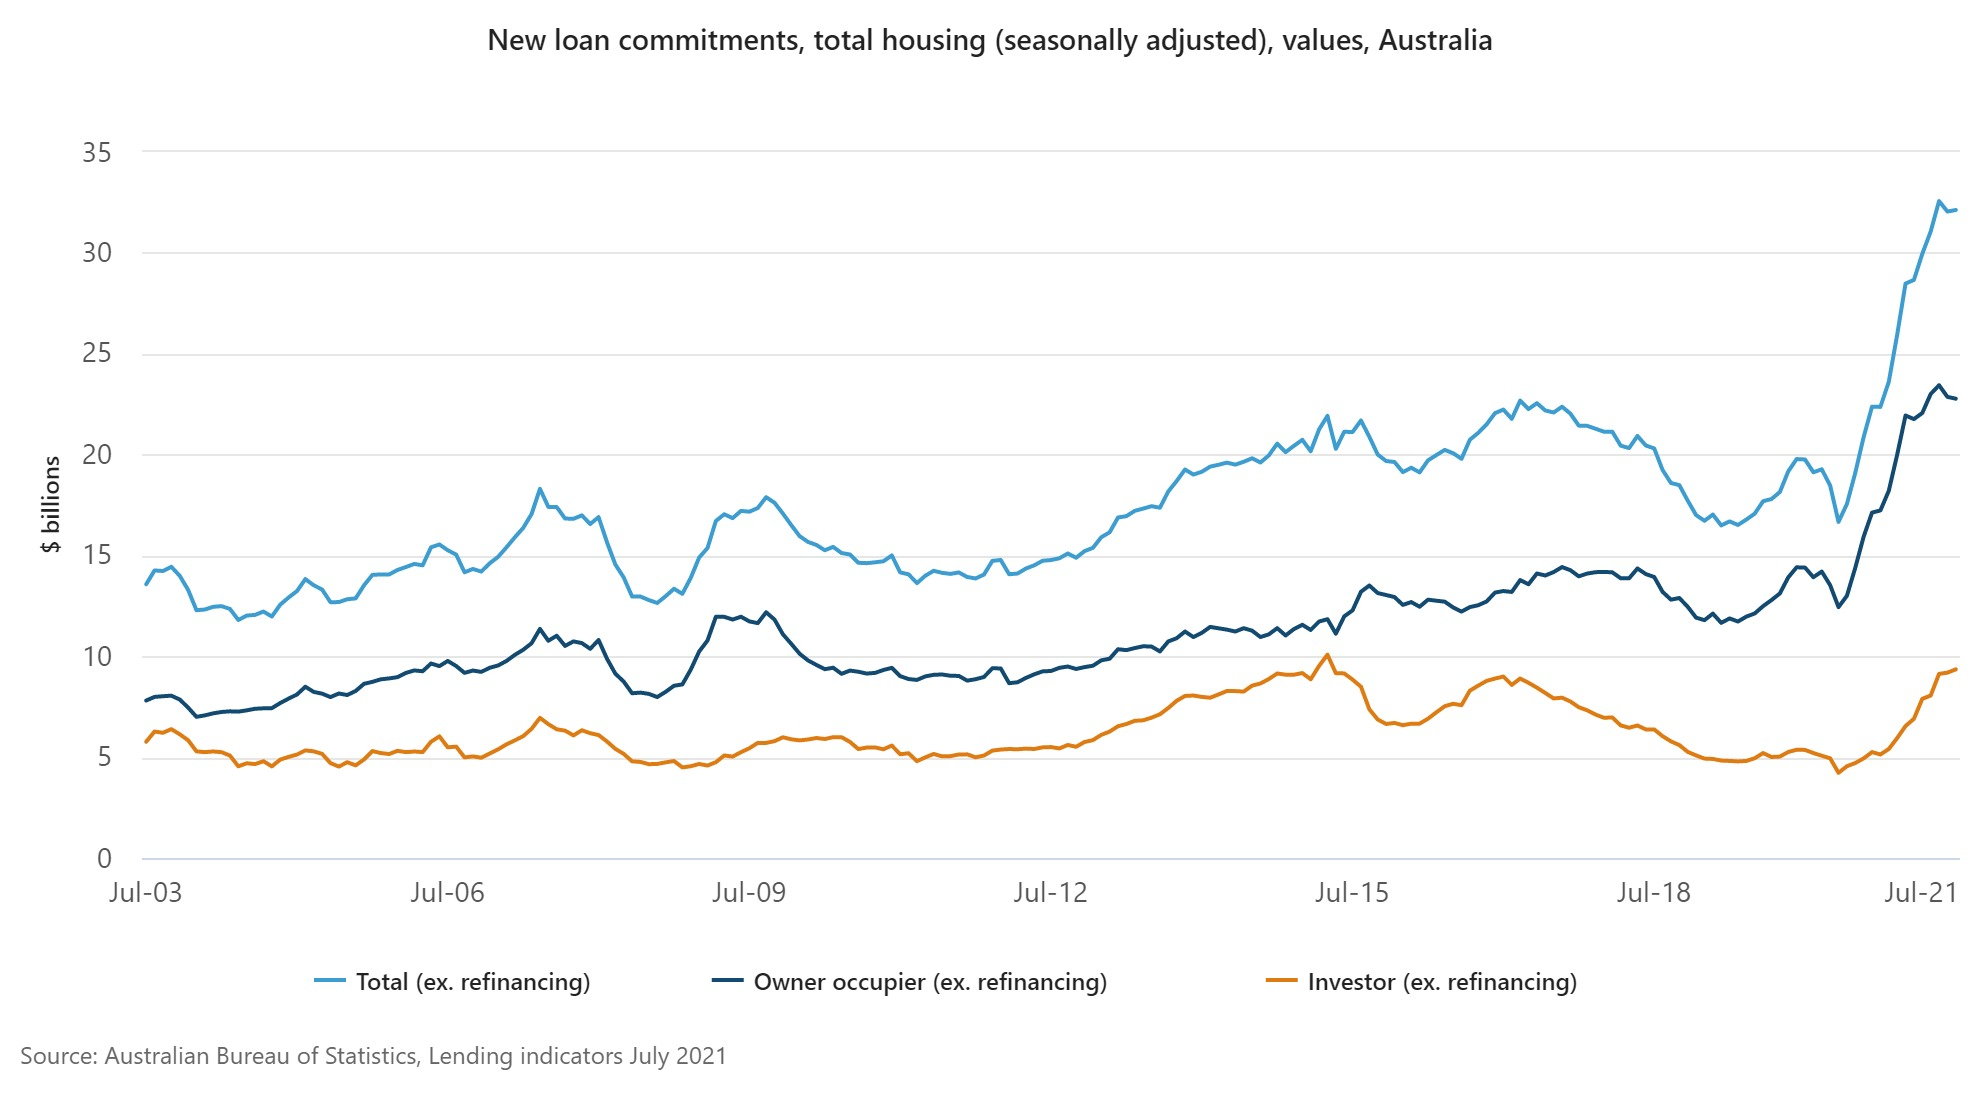 ABS graph shows a dramatic surge in new home loan commitments